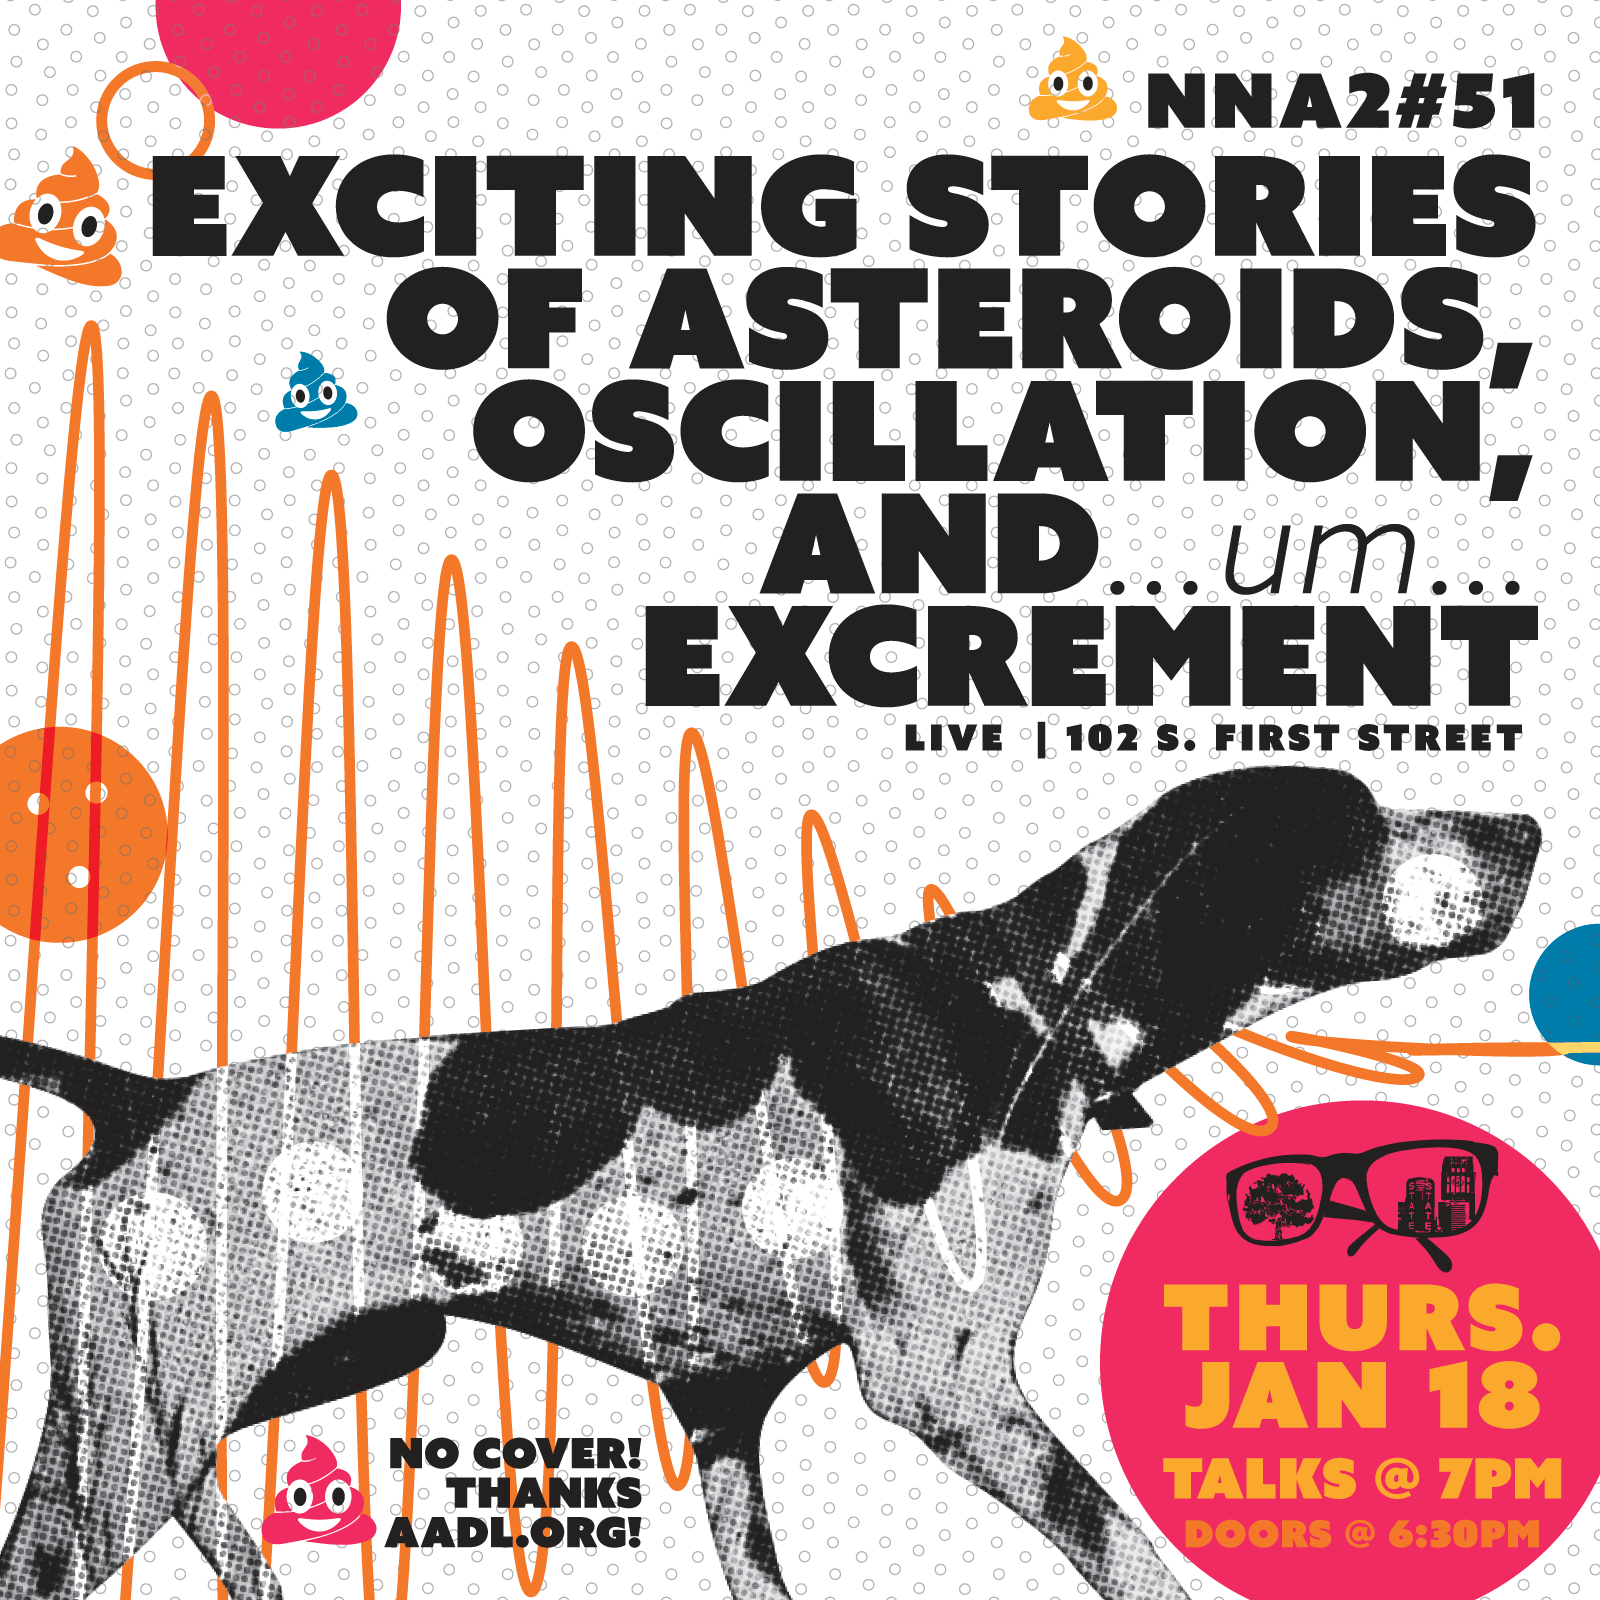 NNA2 #51: Exciting Stories of Asteroids, Oscillation, and